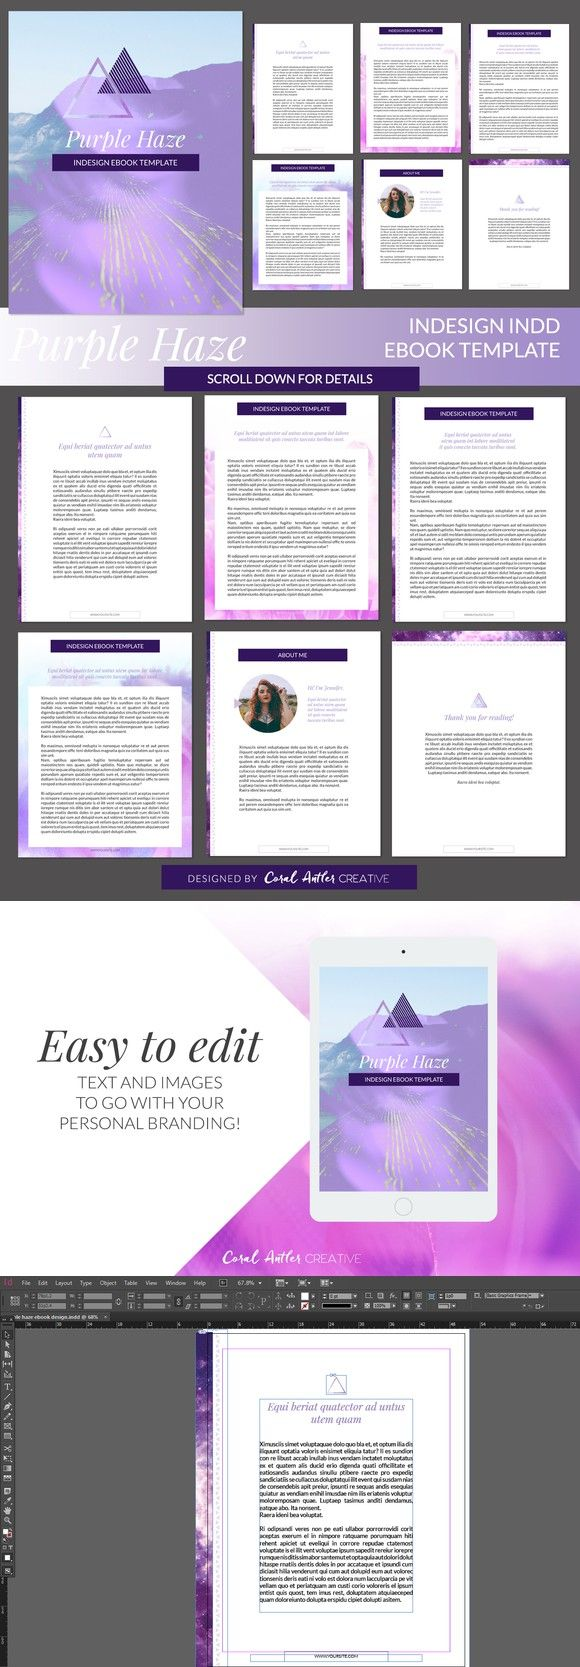 Magnificent Indesign Ebook Template Ideas - Entry Level Resume ...